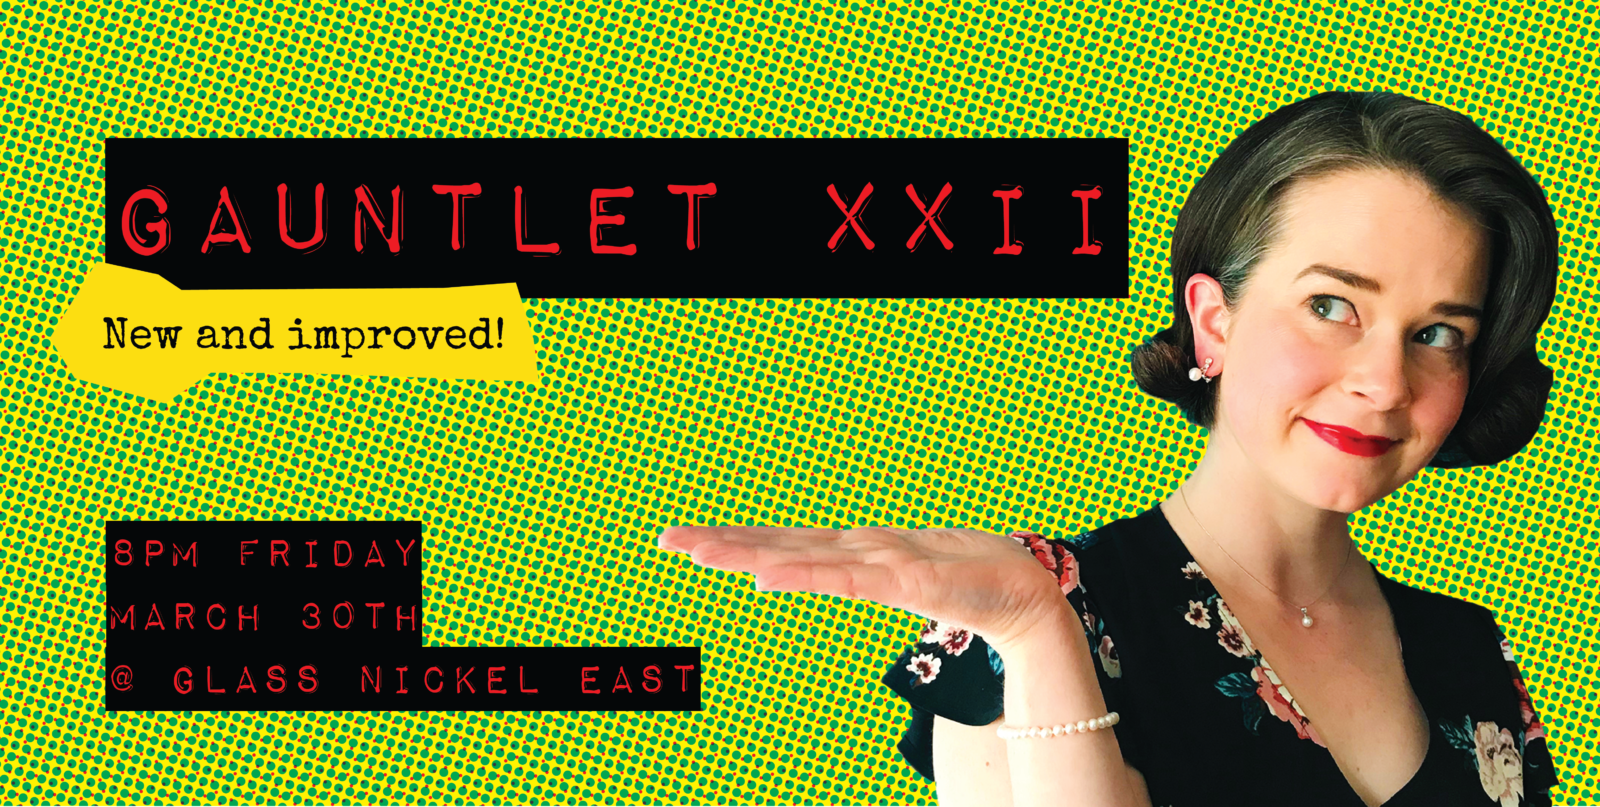 The Gauntlet XXII: New and Improved artwork green